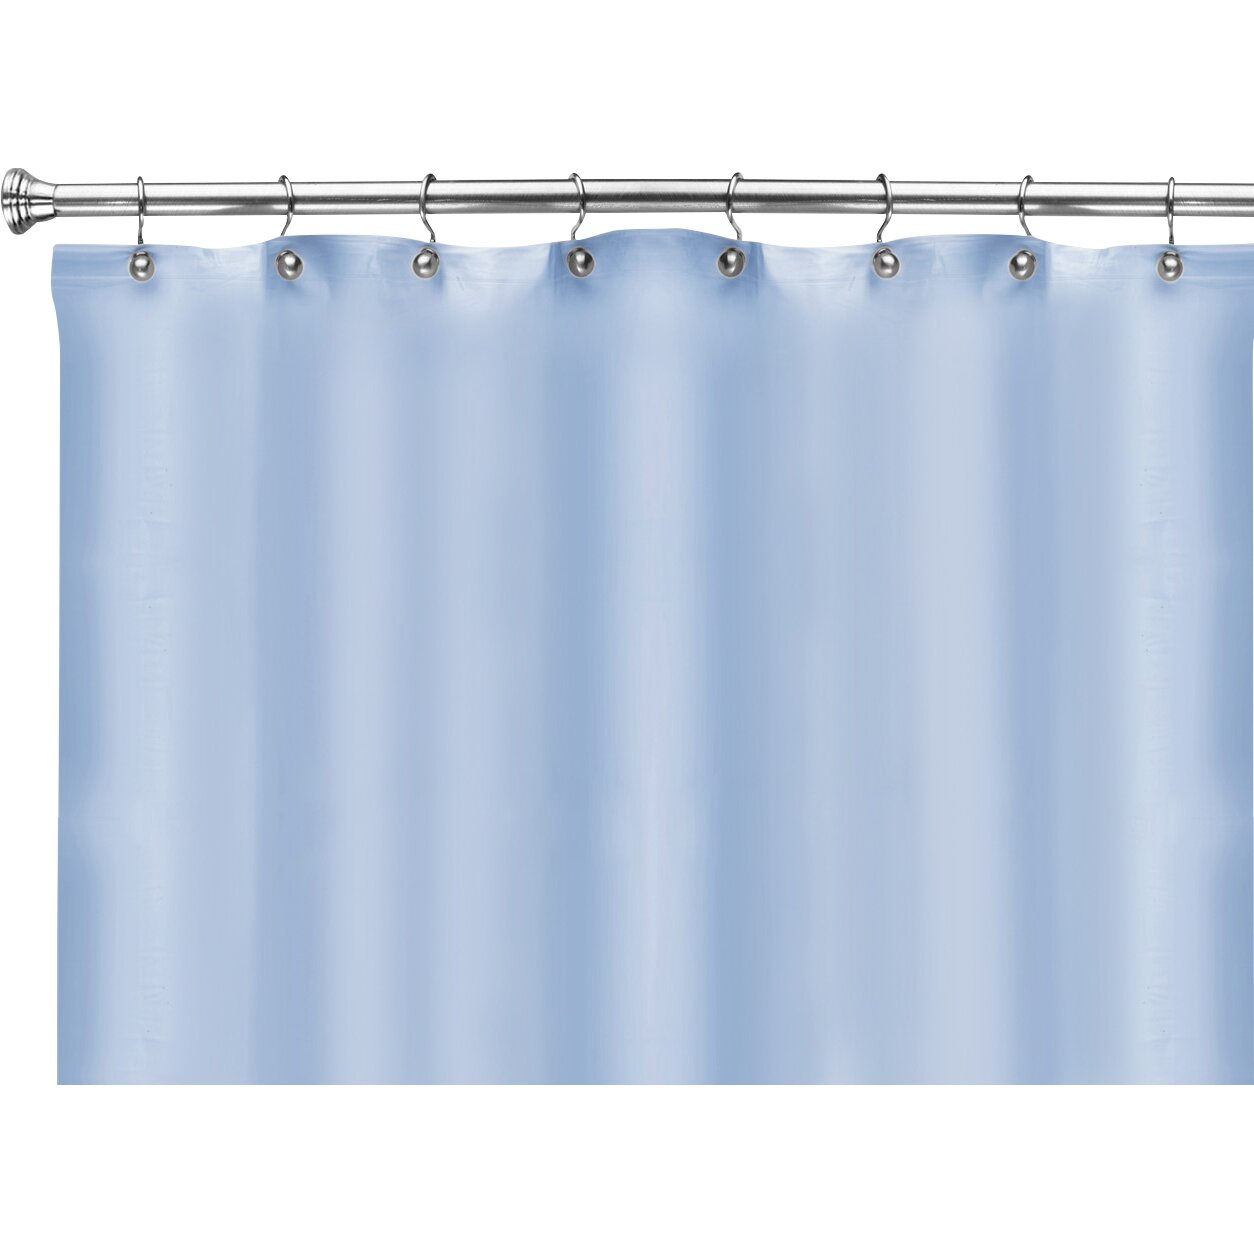 Popular Bath Products Vinyl Hotel Shower Curtain Liner